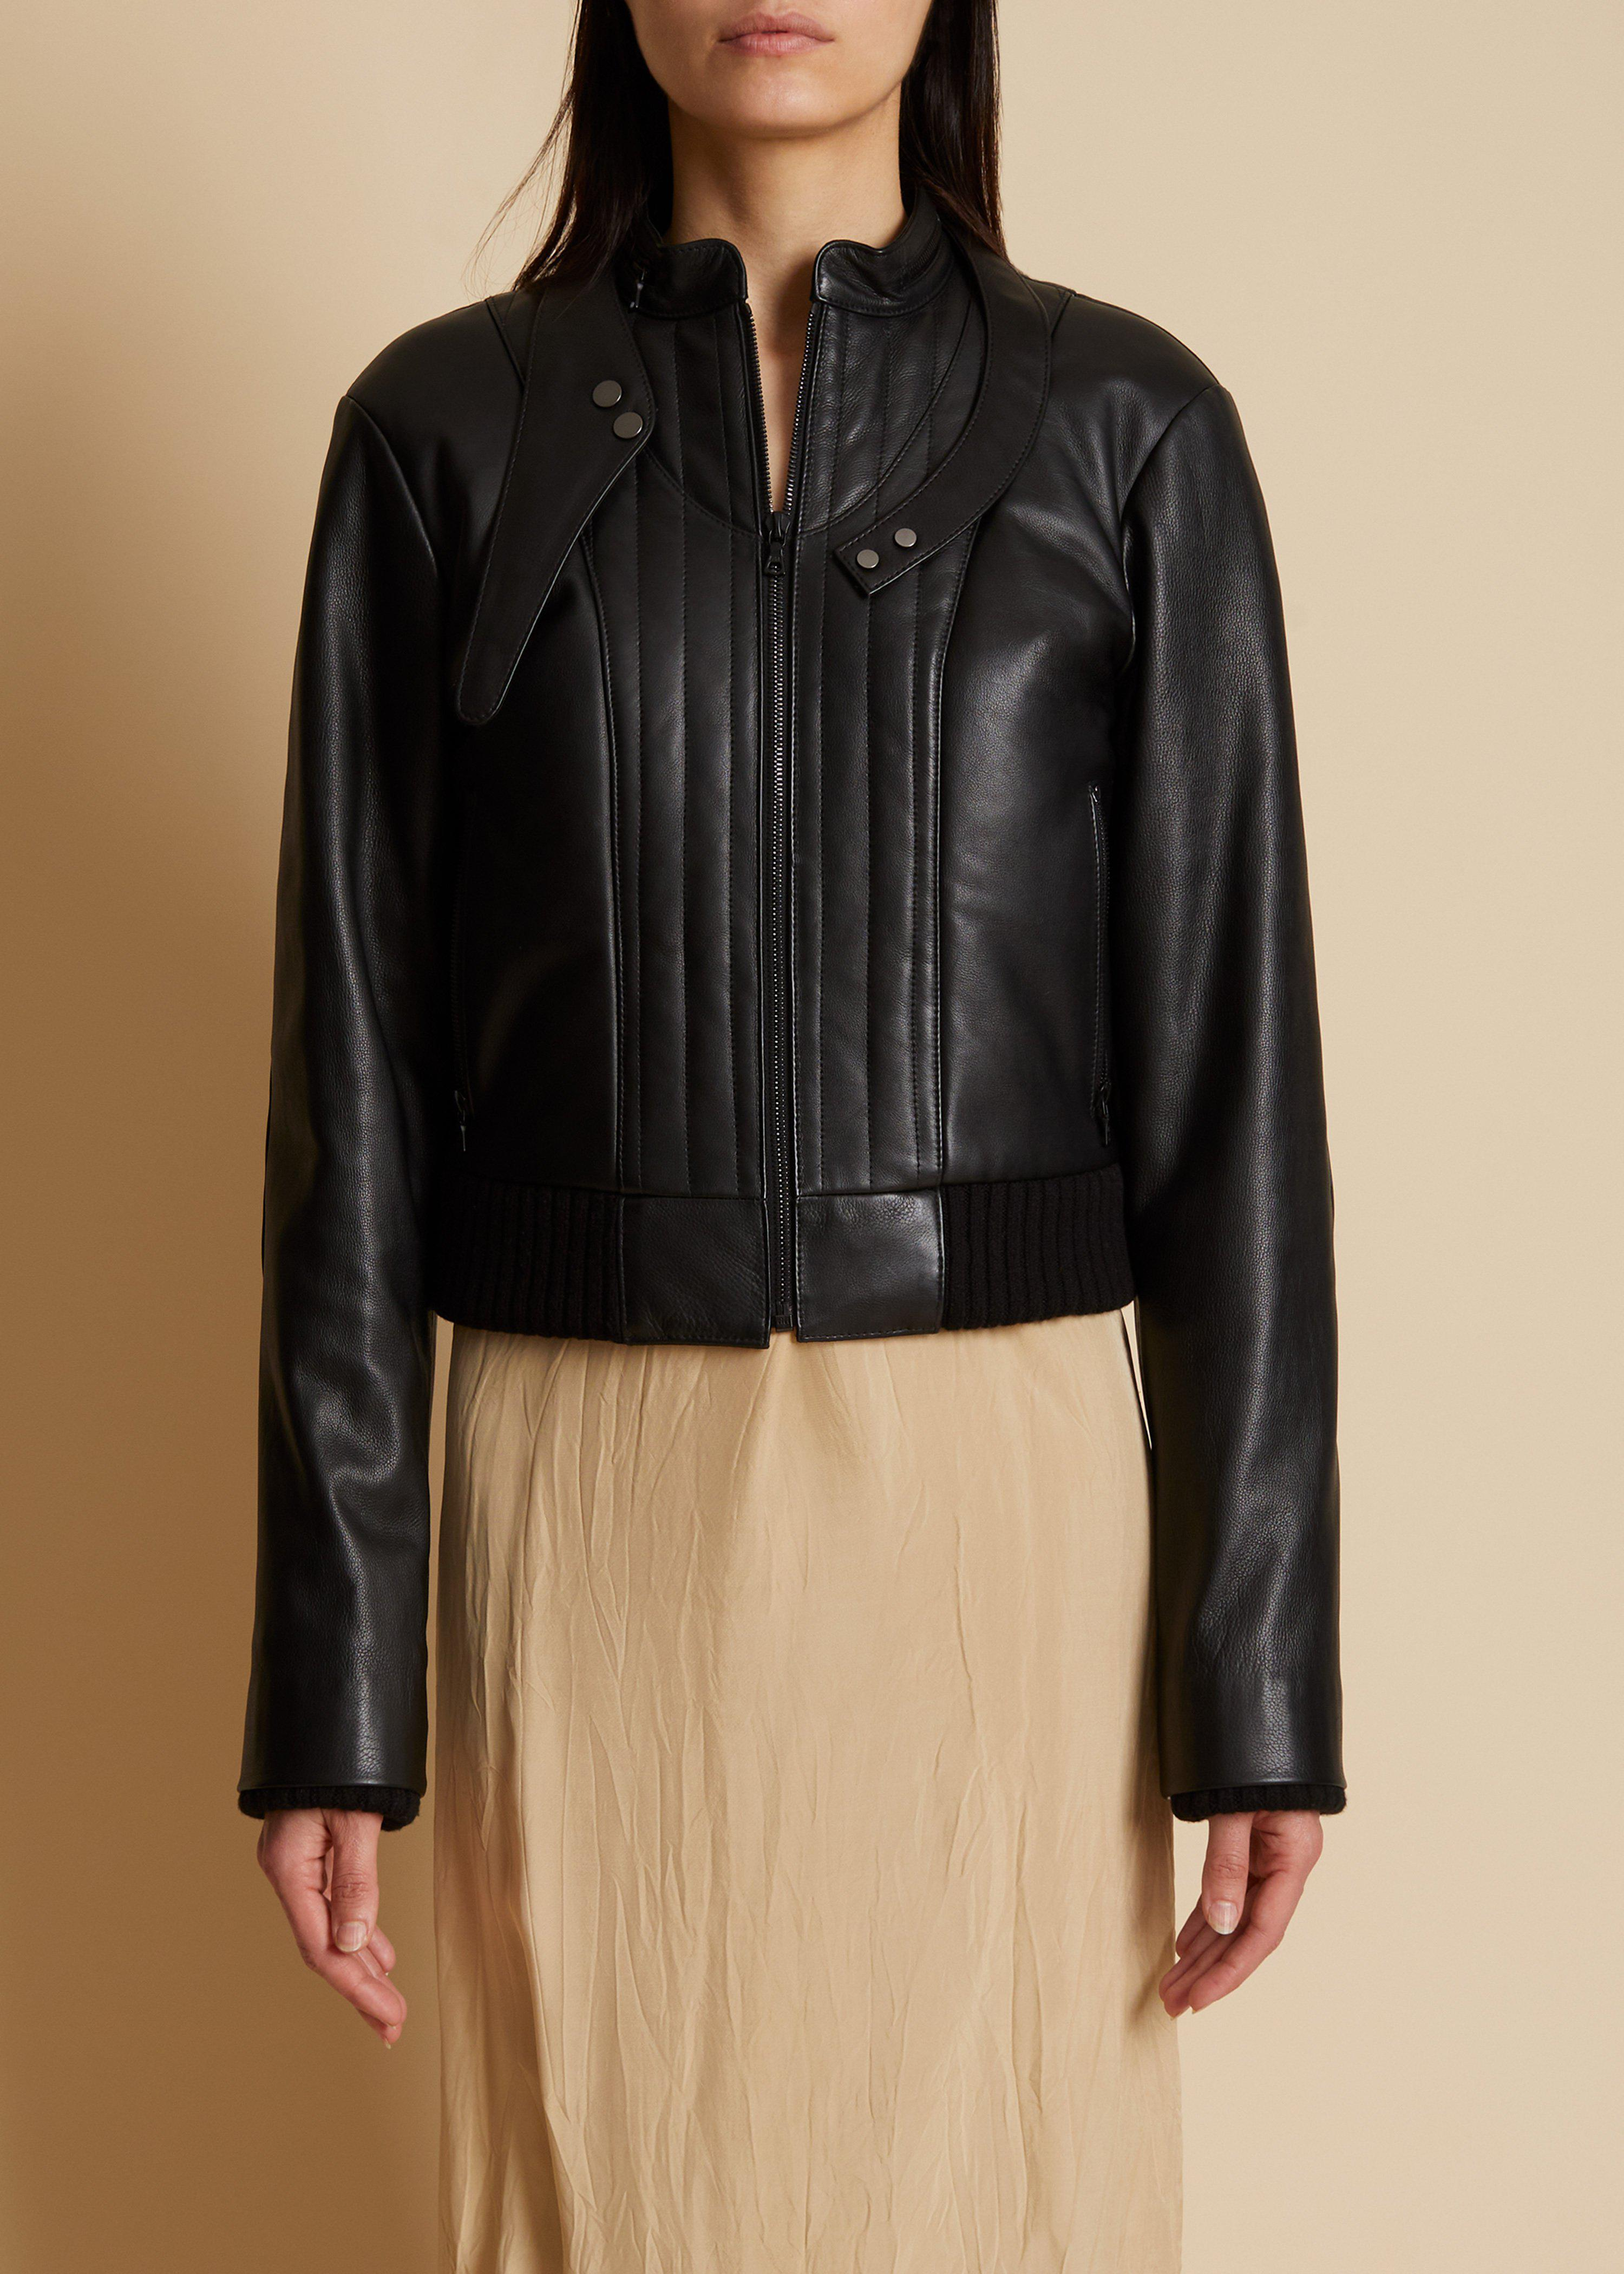 The Nicolette Jacket in Black Leather 1